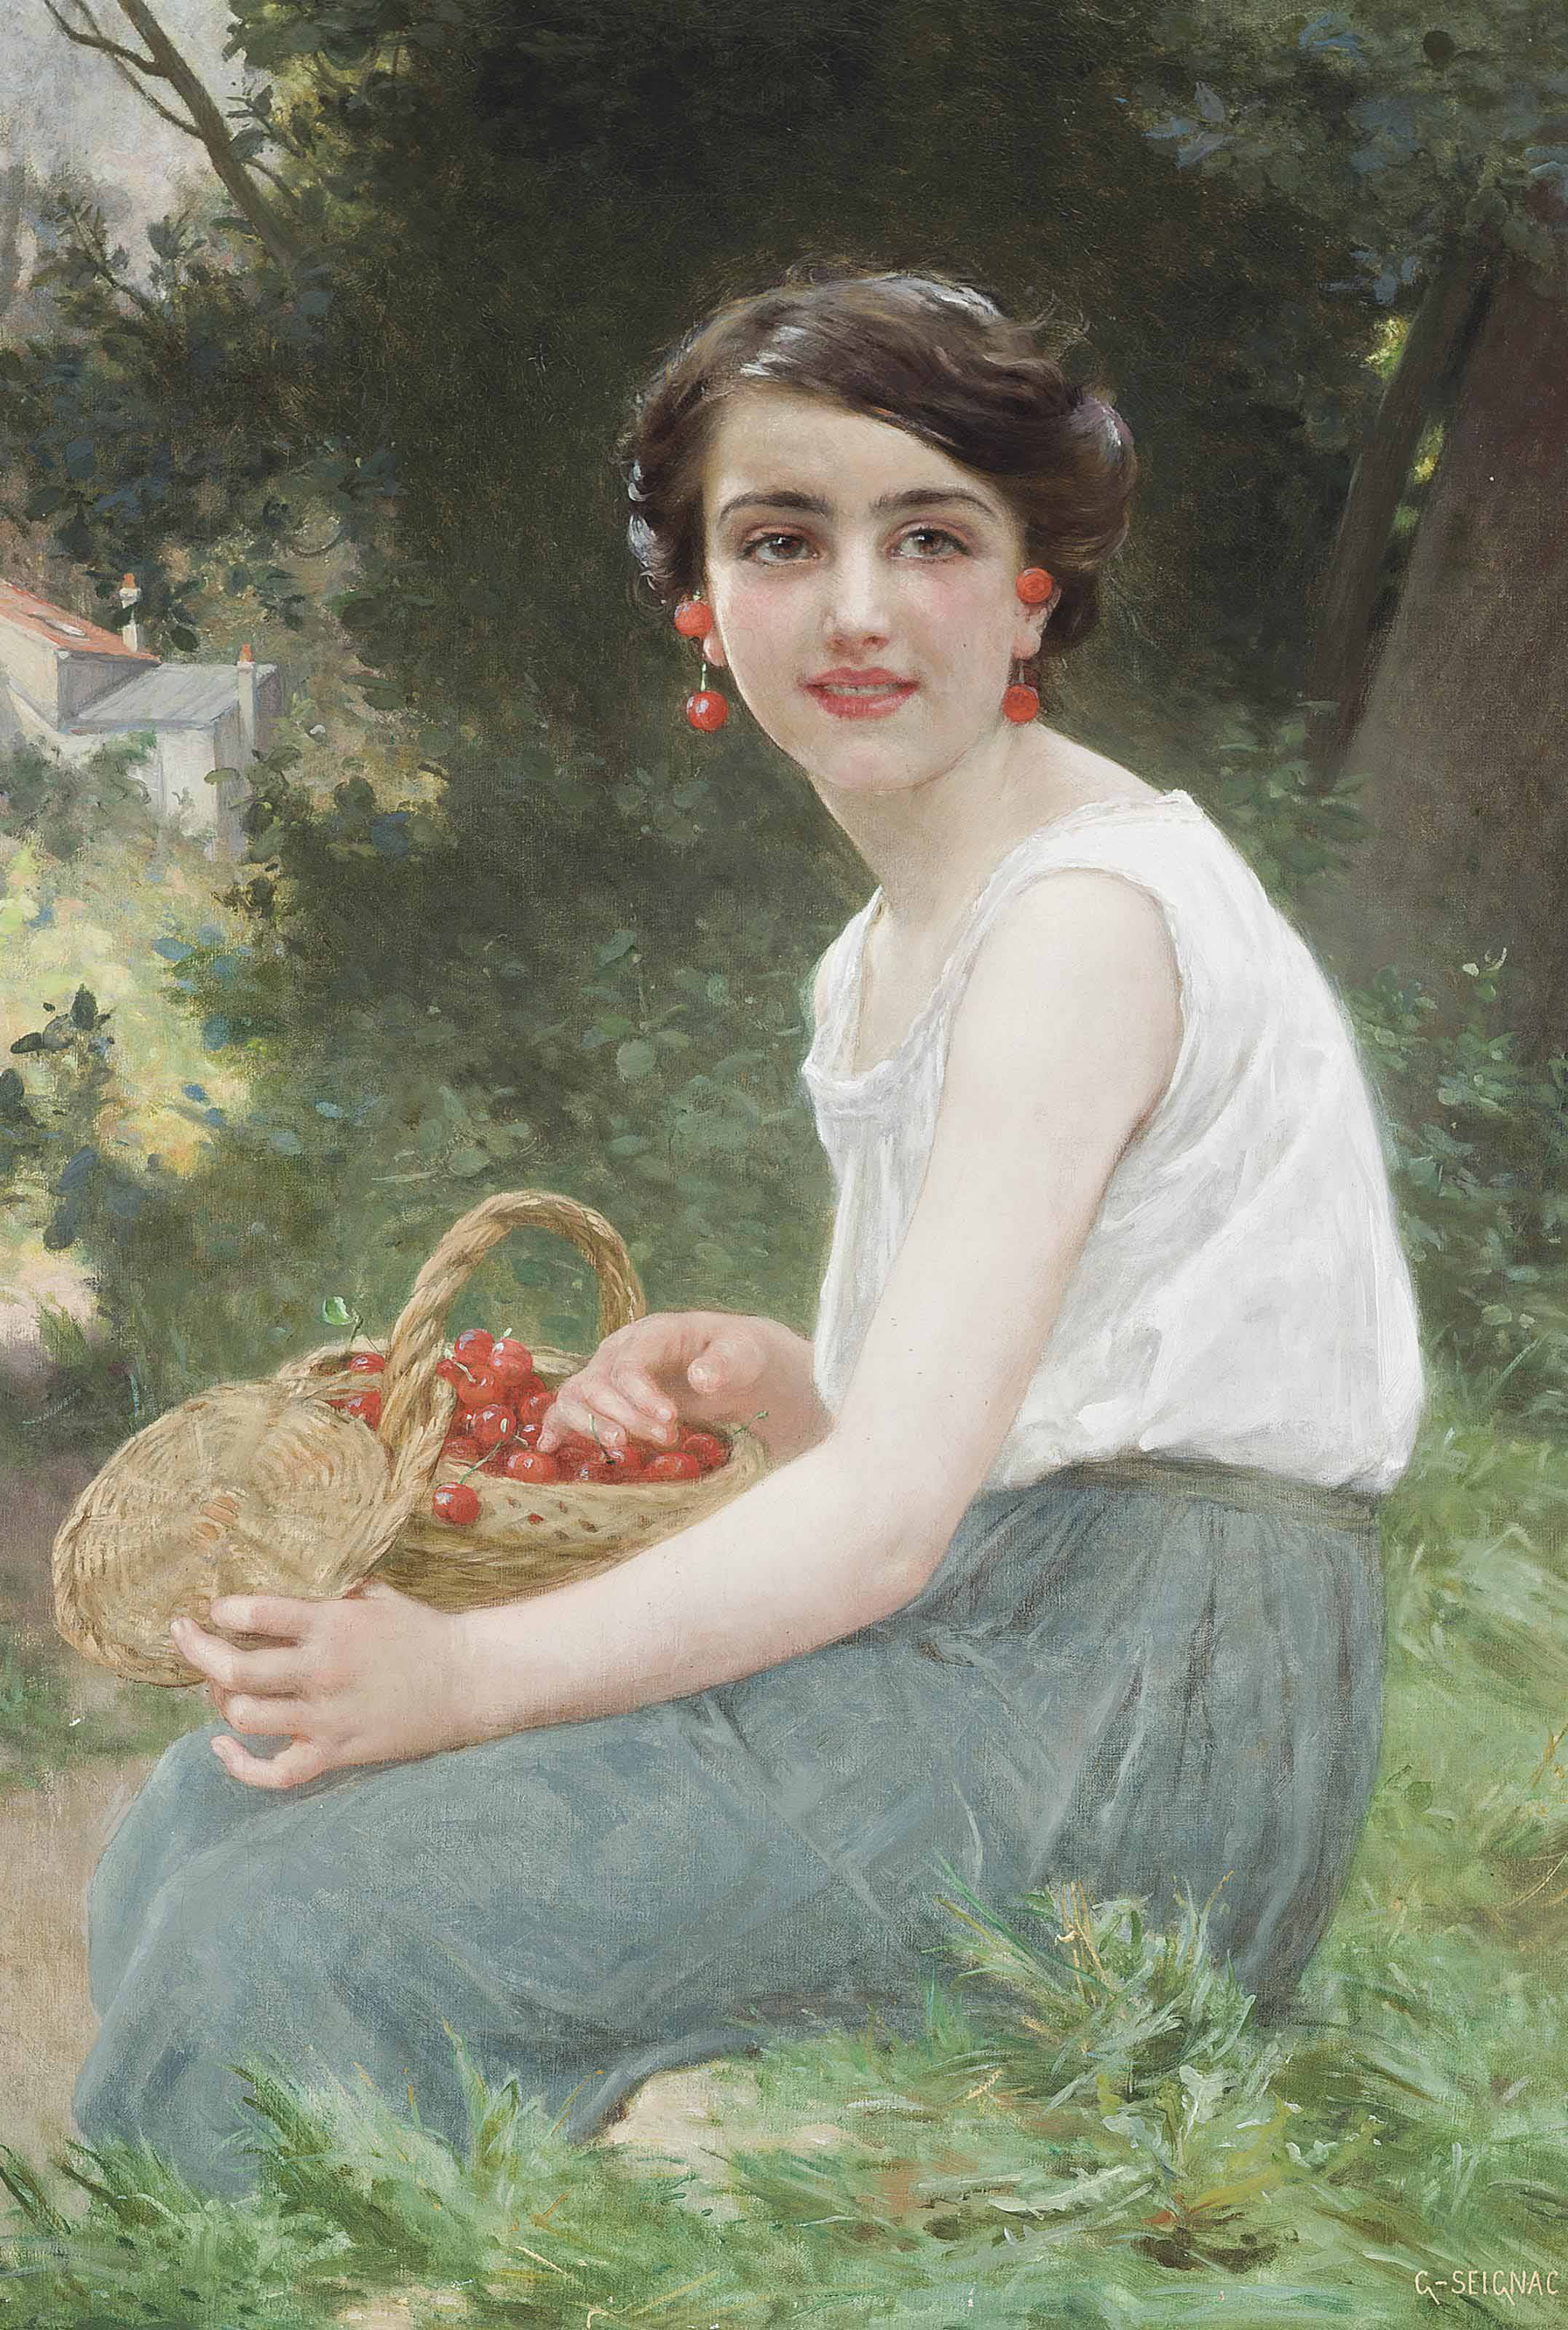 The cherry girl